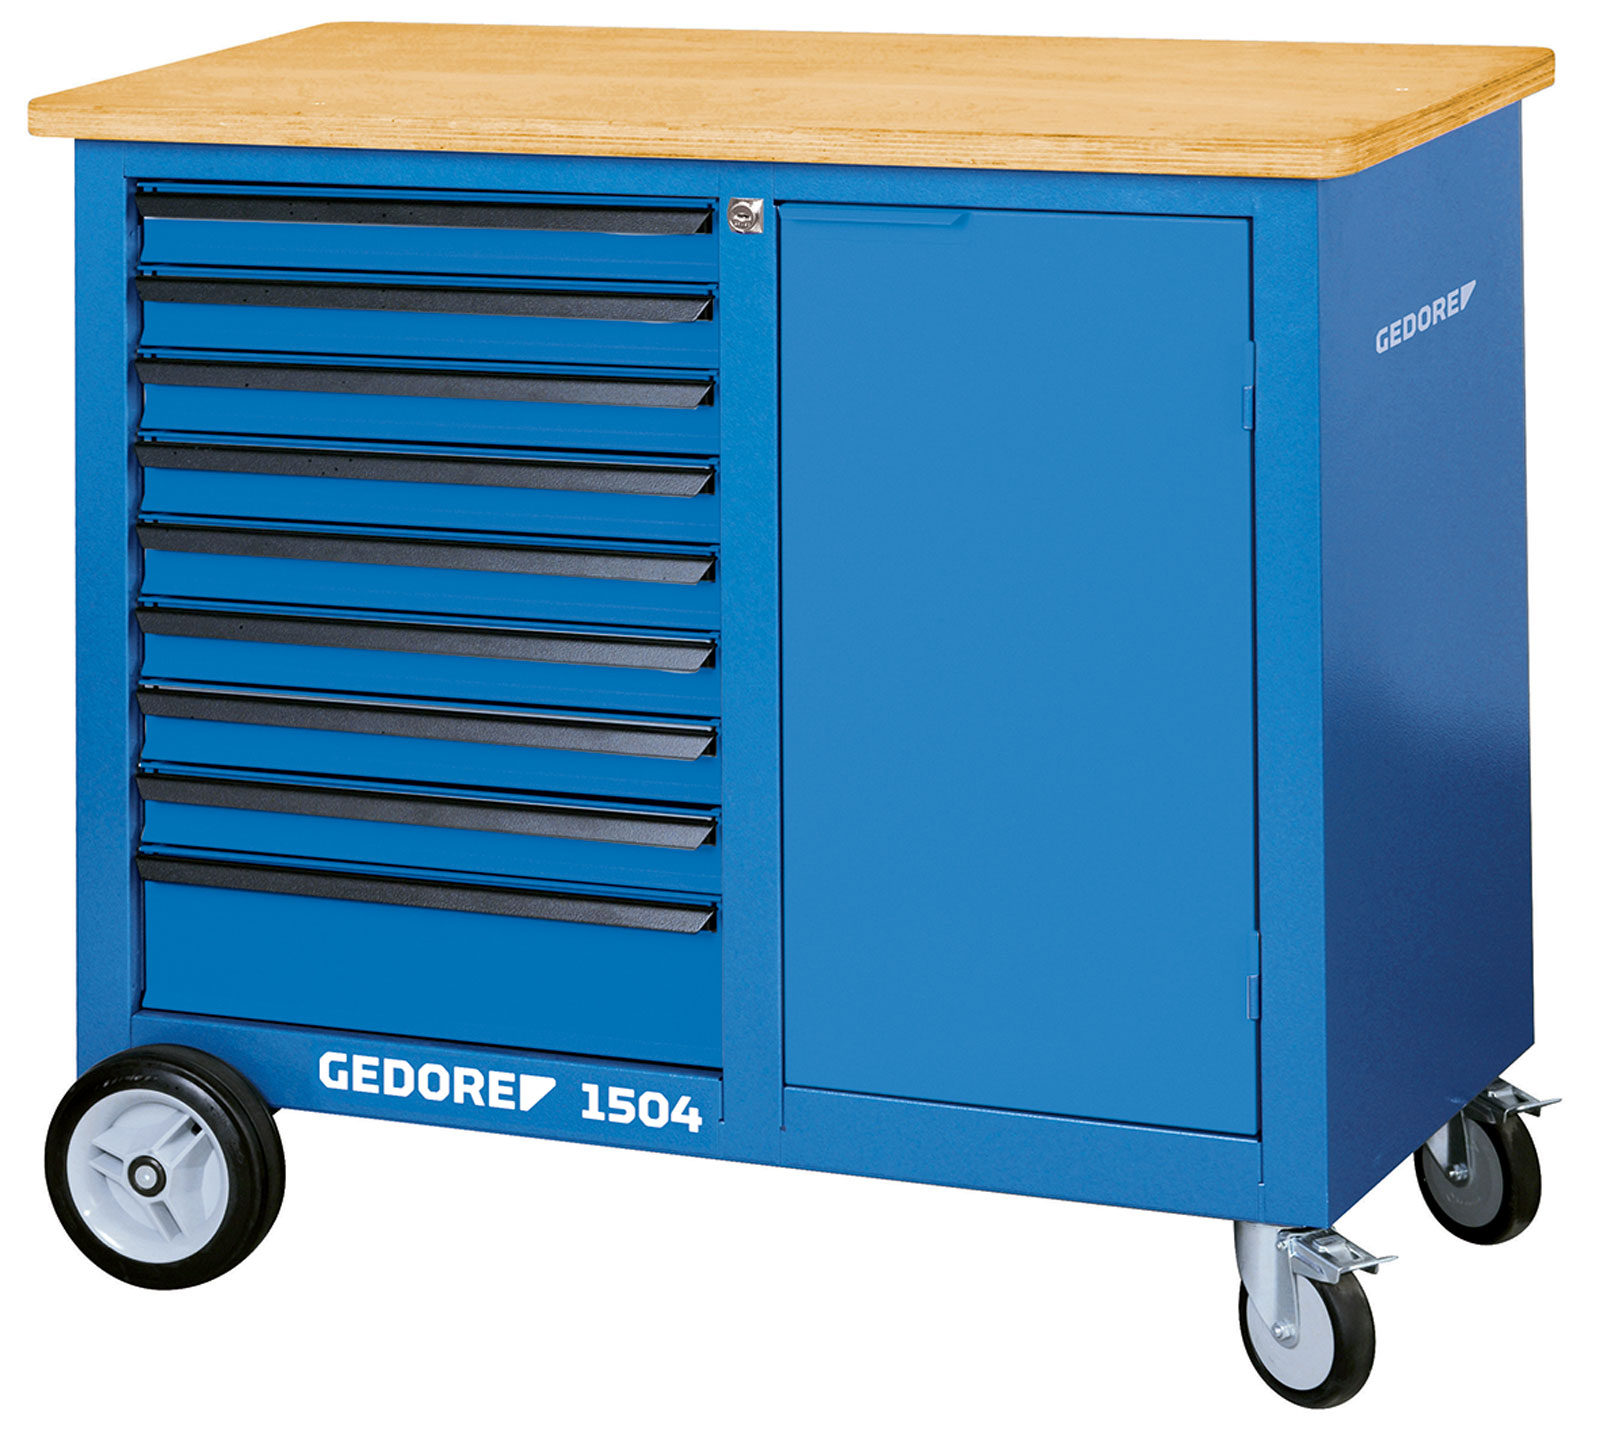 Gedore 1504 0810 Mobile workbench with 9 drawers